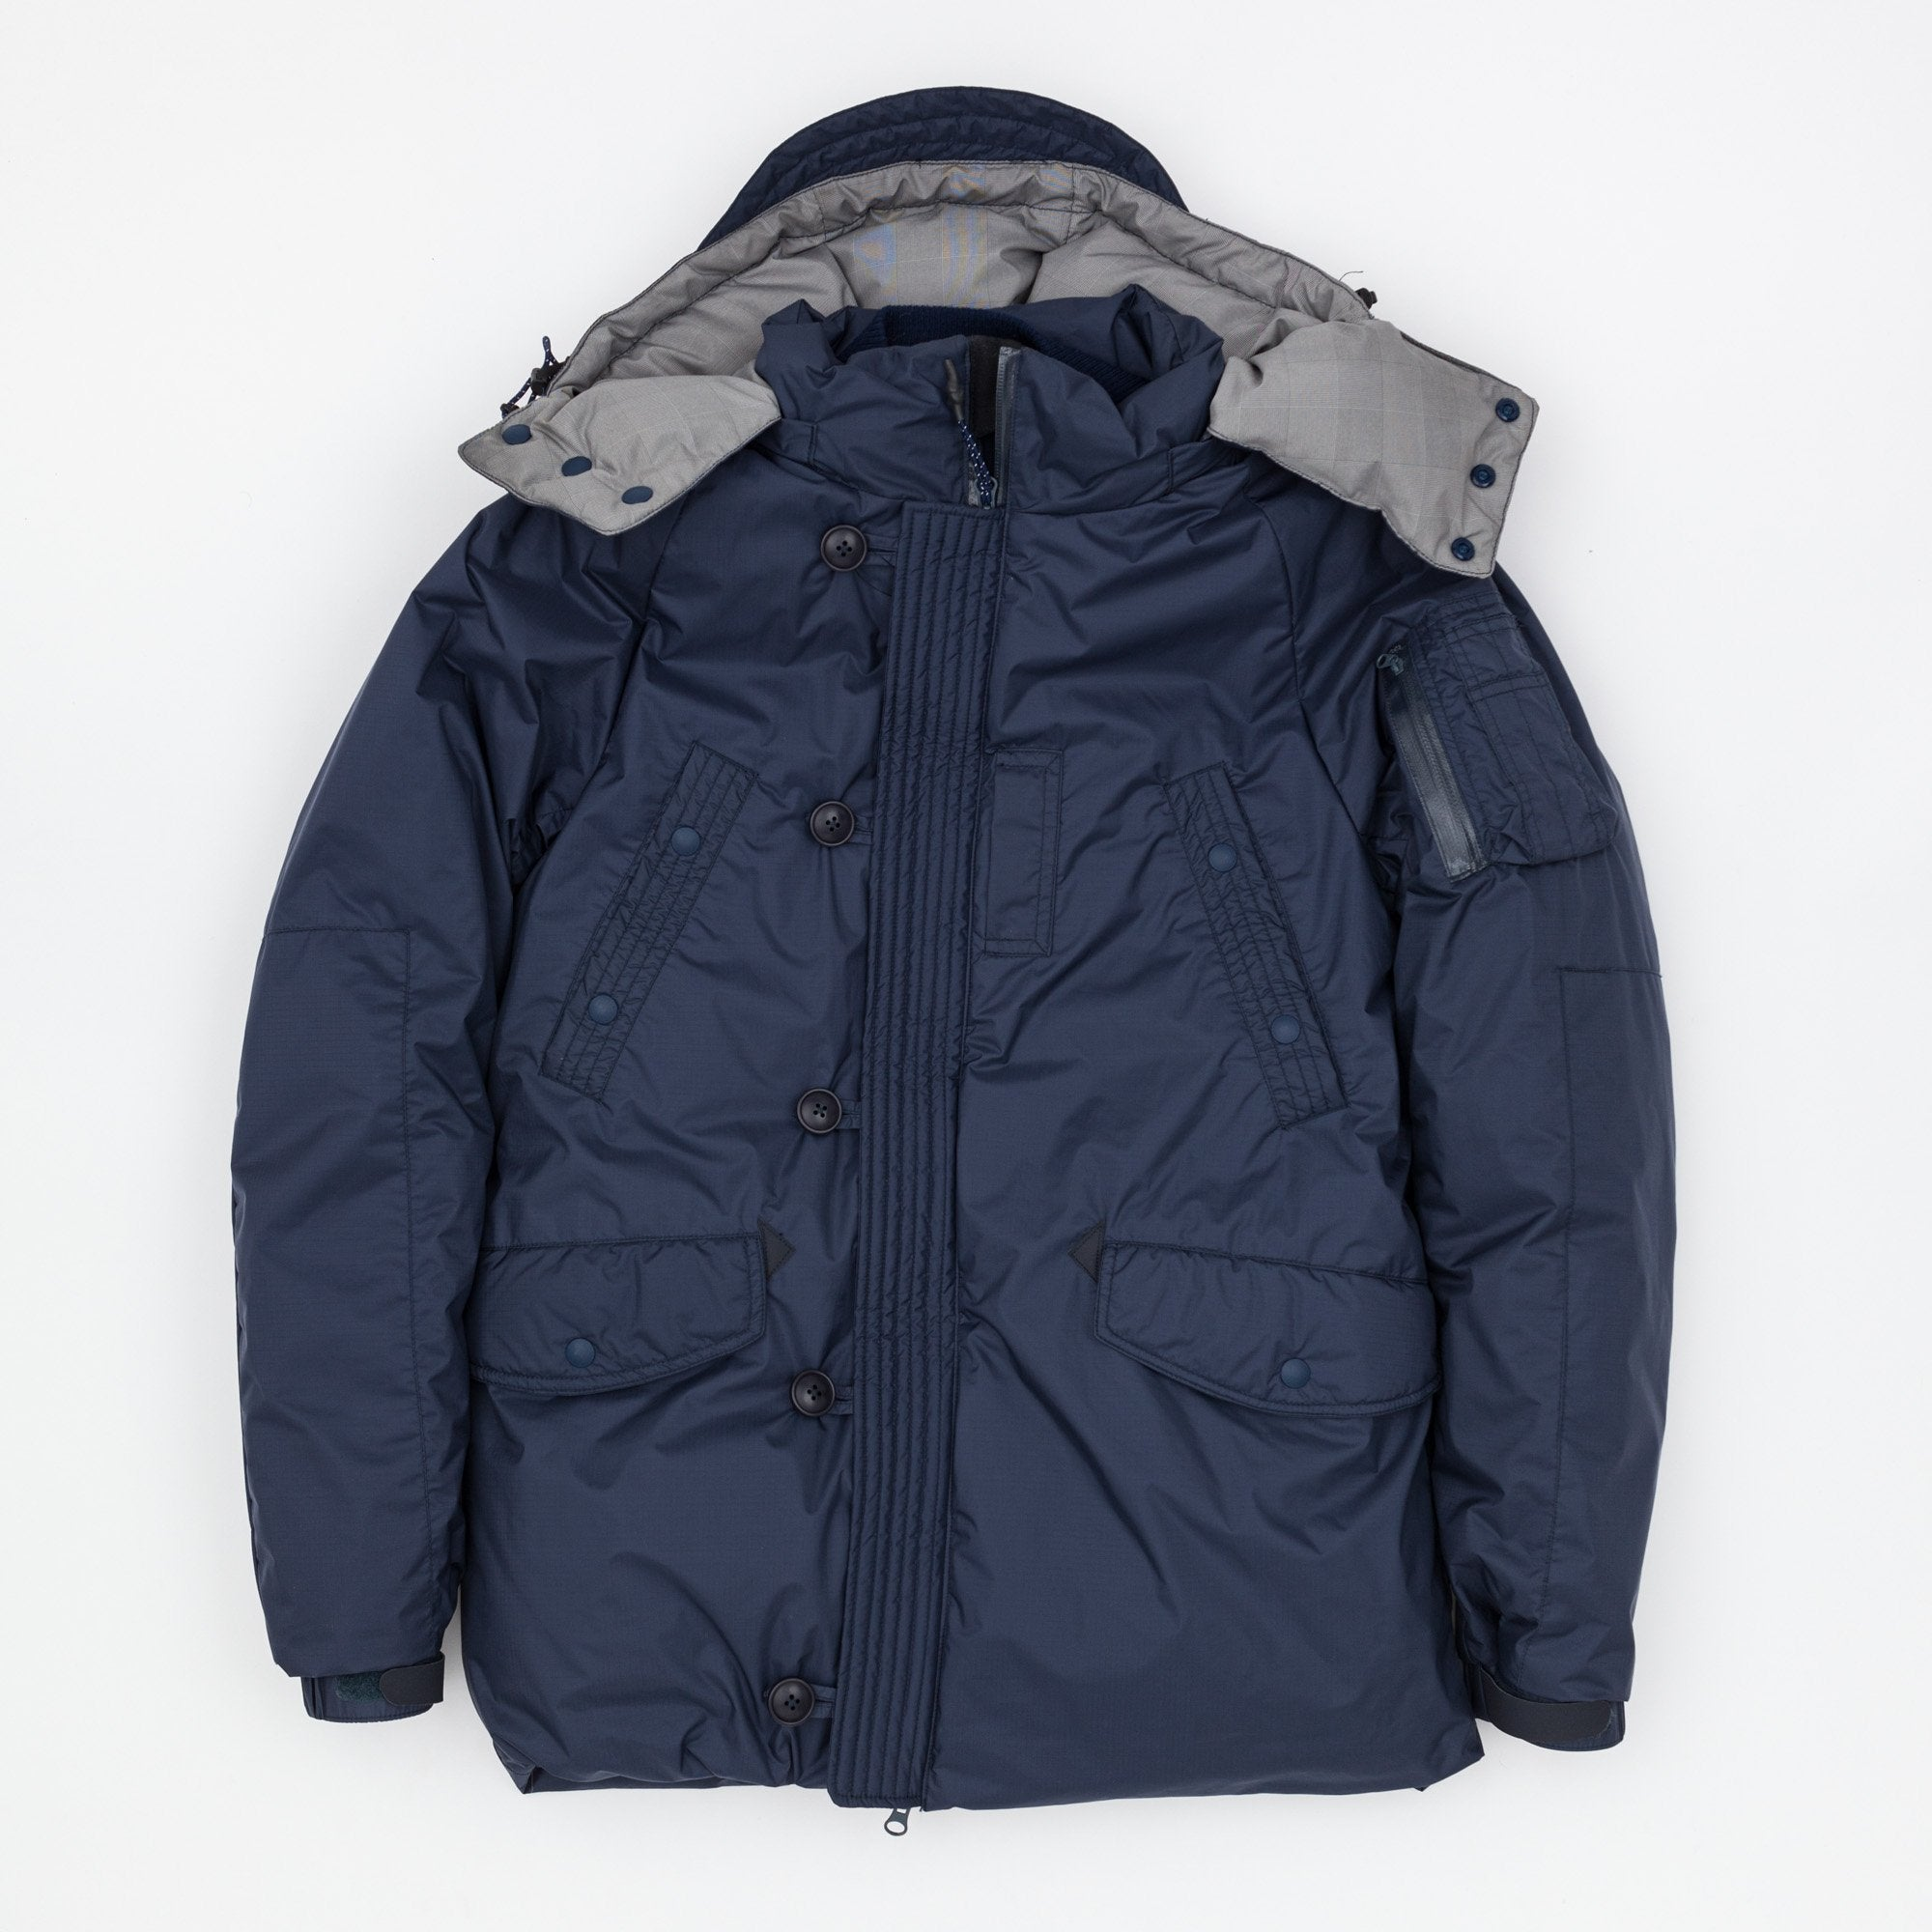 Ficouture x Nanga Pliantex N3b Travel Down Jacket